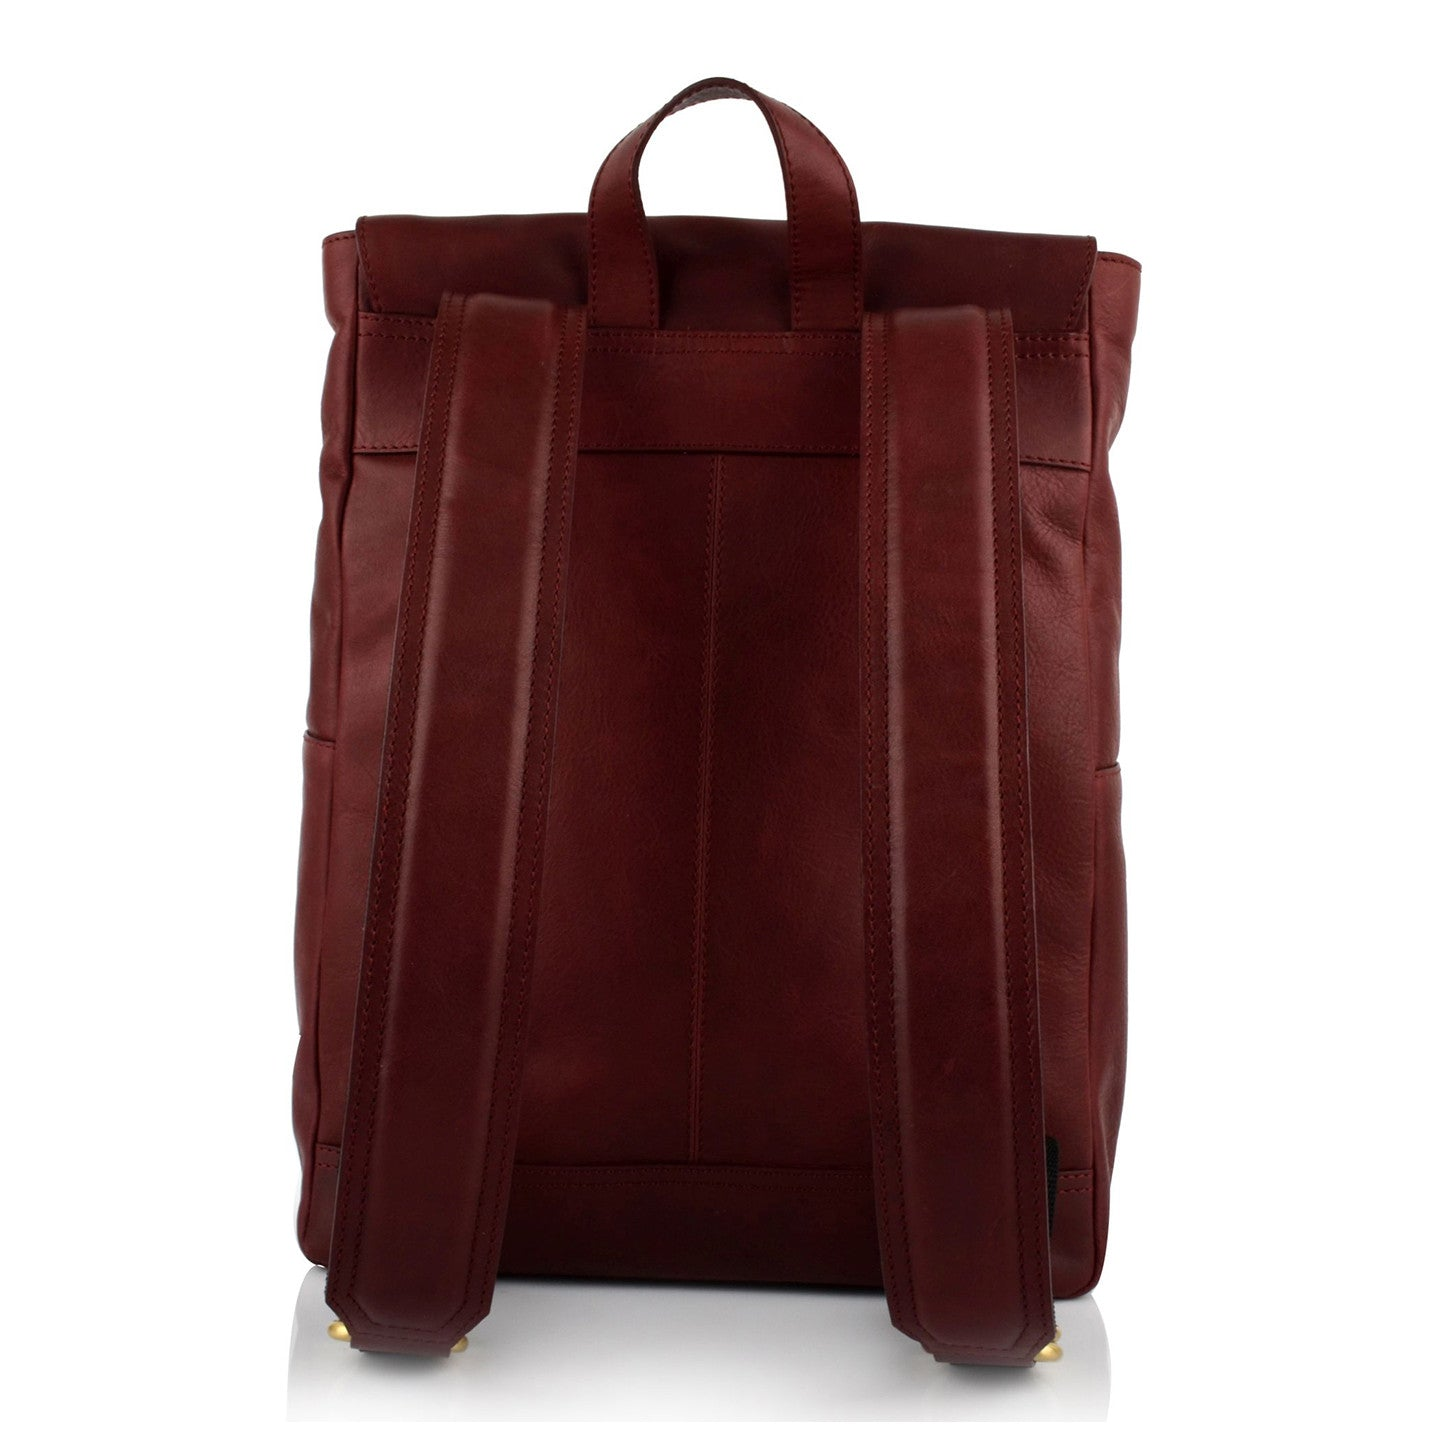 LG16040 - Collezione Miami Men's Bordo Backpack Bag